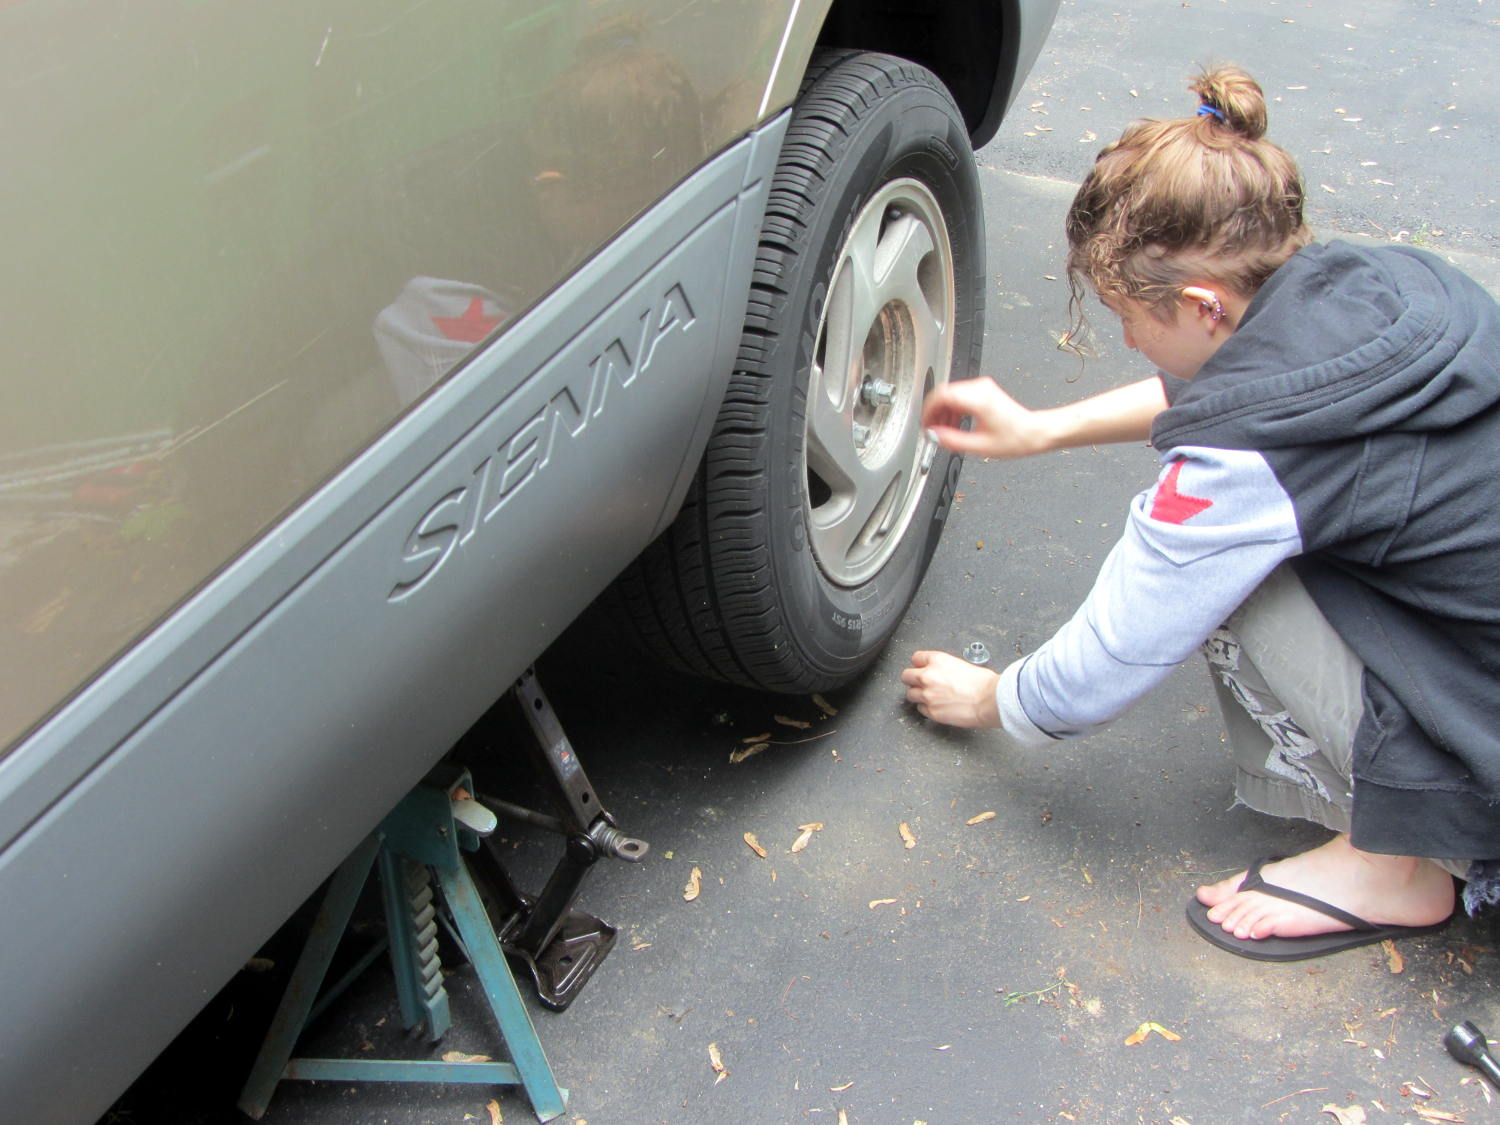 Sienna ABS failure - removing lug nuts